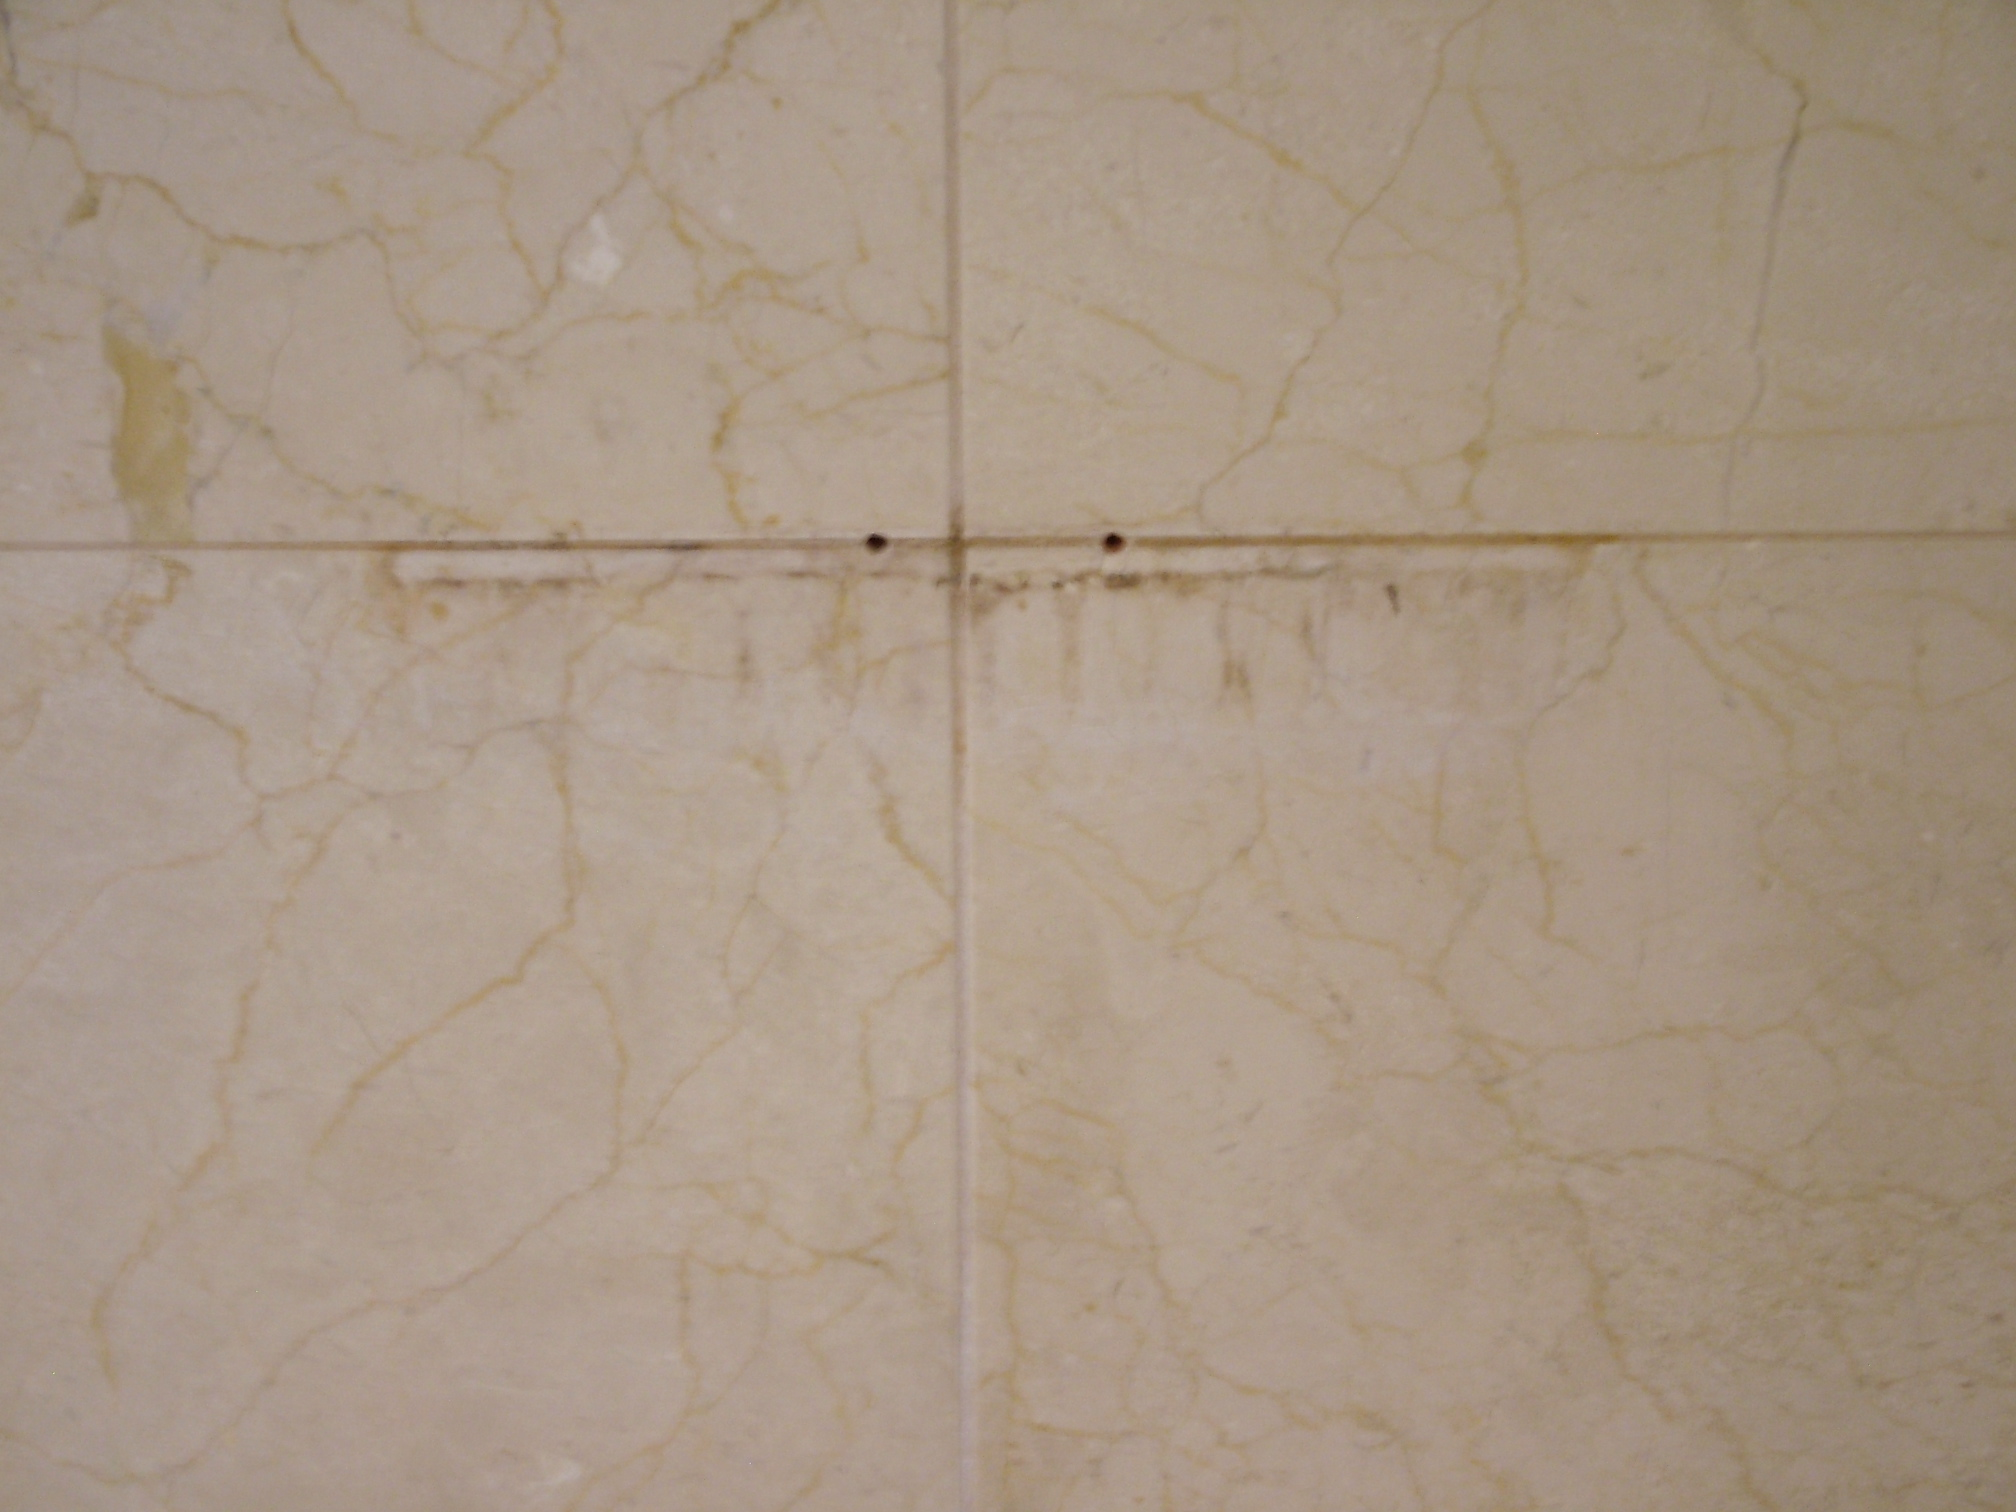 repair shower floor tile grout. lustre ltd specialists in marble cleaning, polishing and tile \u0026 grout restoration - repair leaky shower wall floor tiles